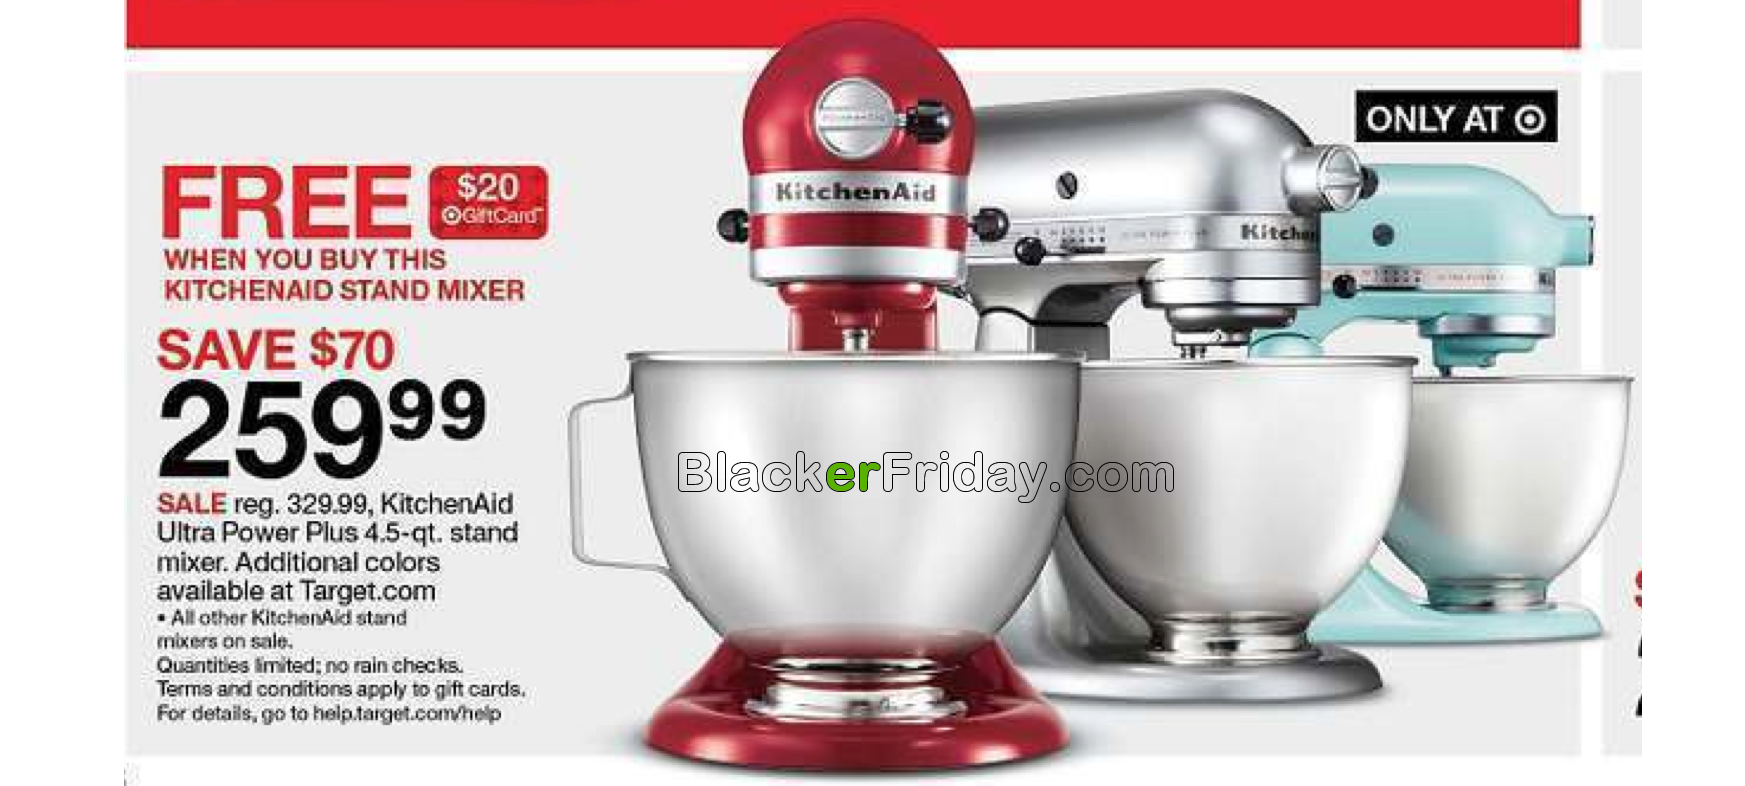 KitchenAid Mixer Black Friday 2018 Sale & Deals - Blacker Friday